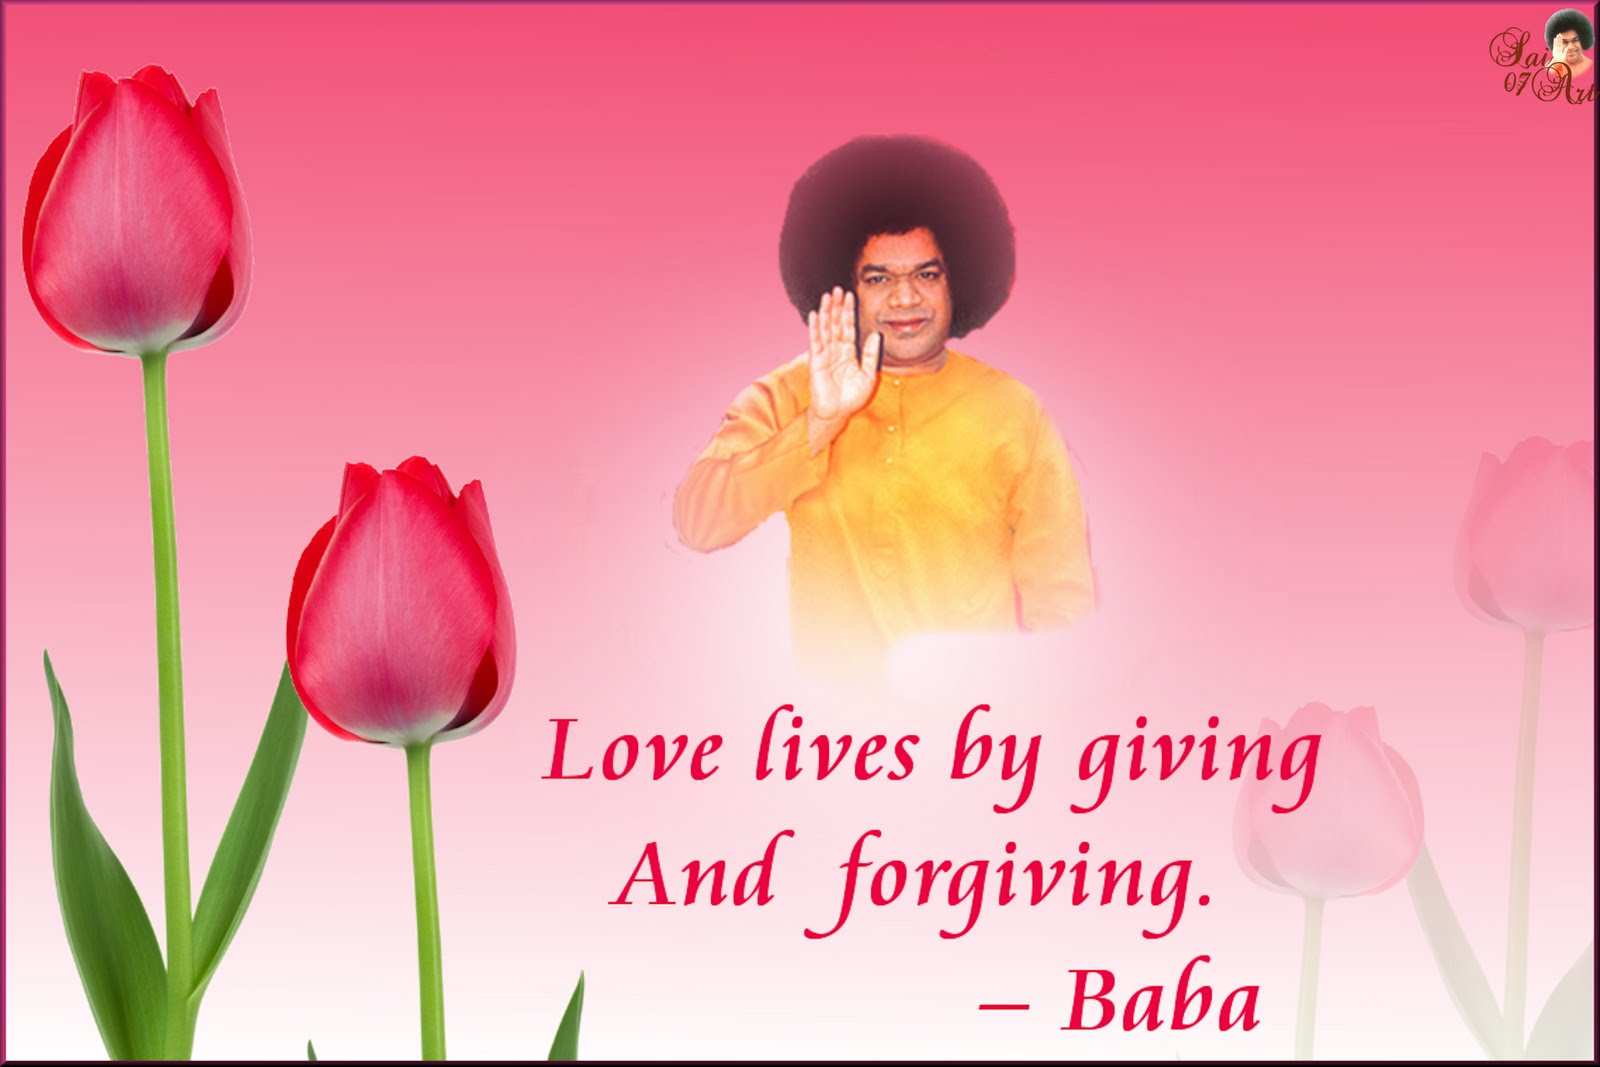 Quotes Of Bhagavan Sri Sathya Sai Baba: April 2011